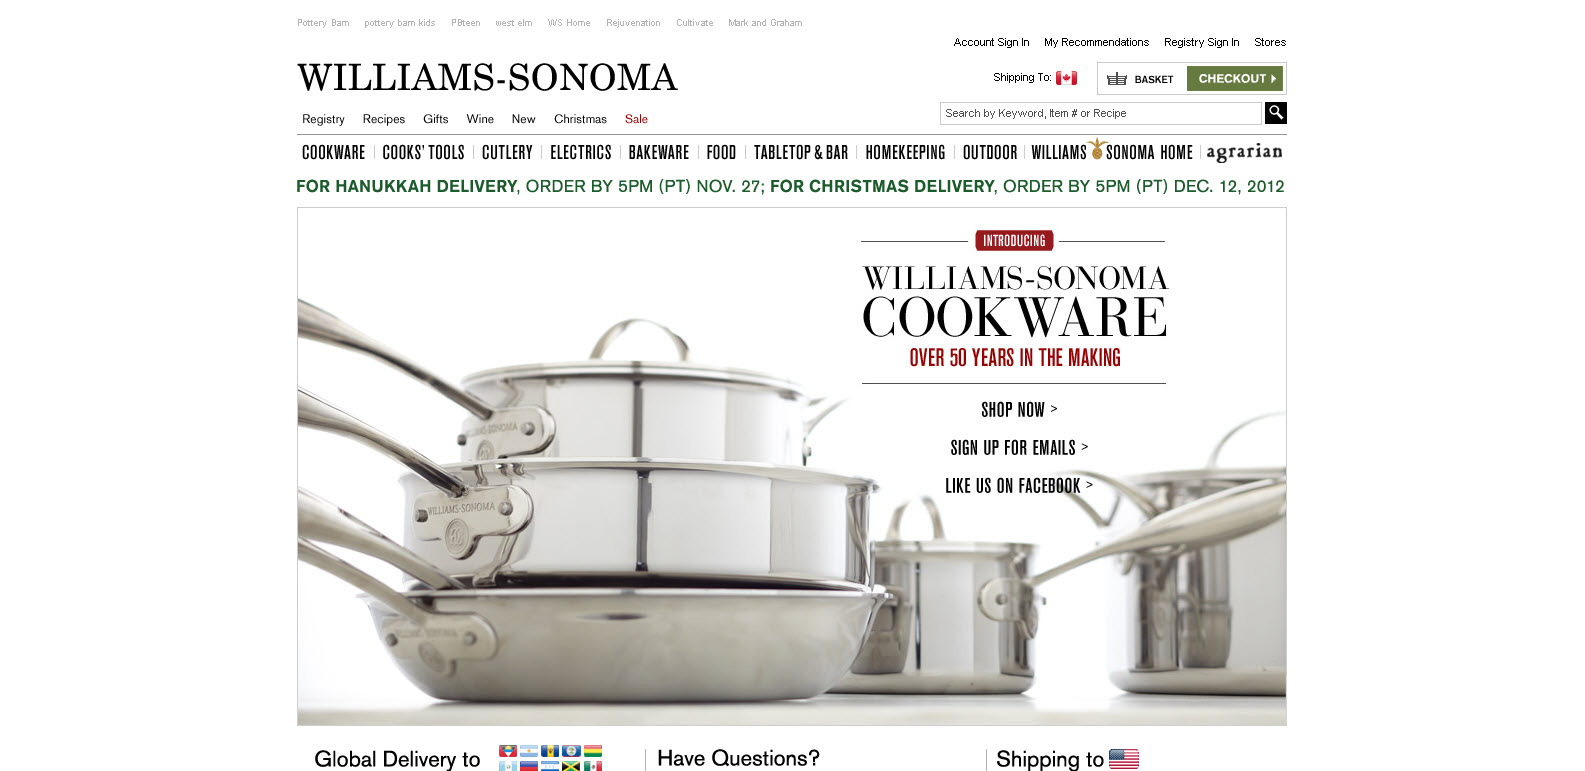 Williams-Sonoma - Cuisine